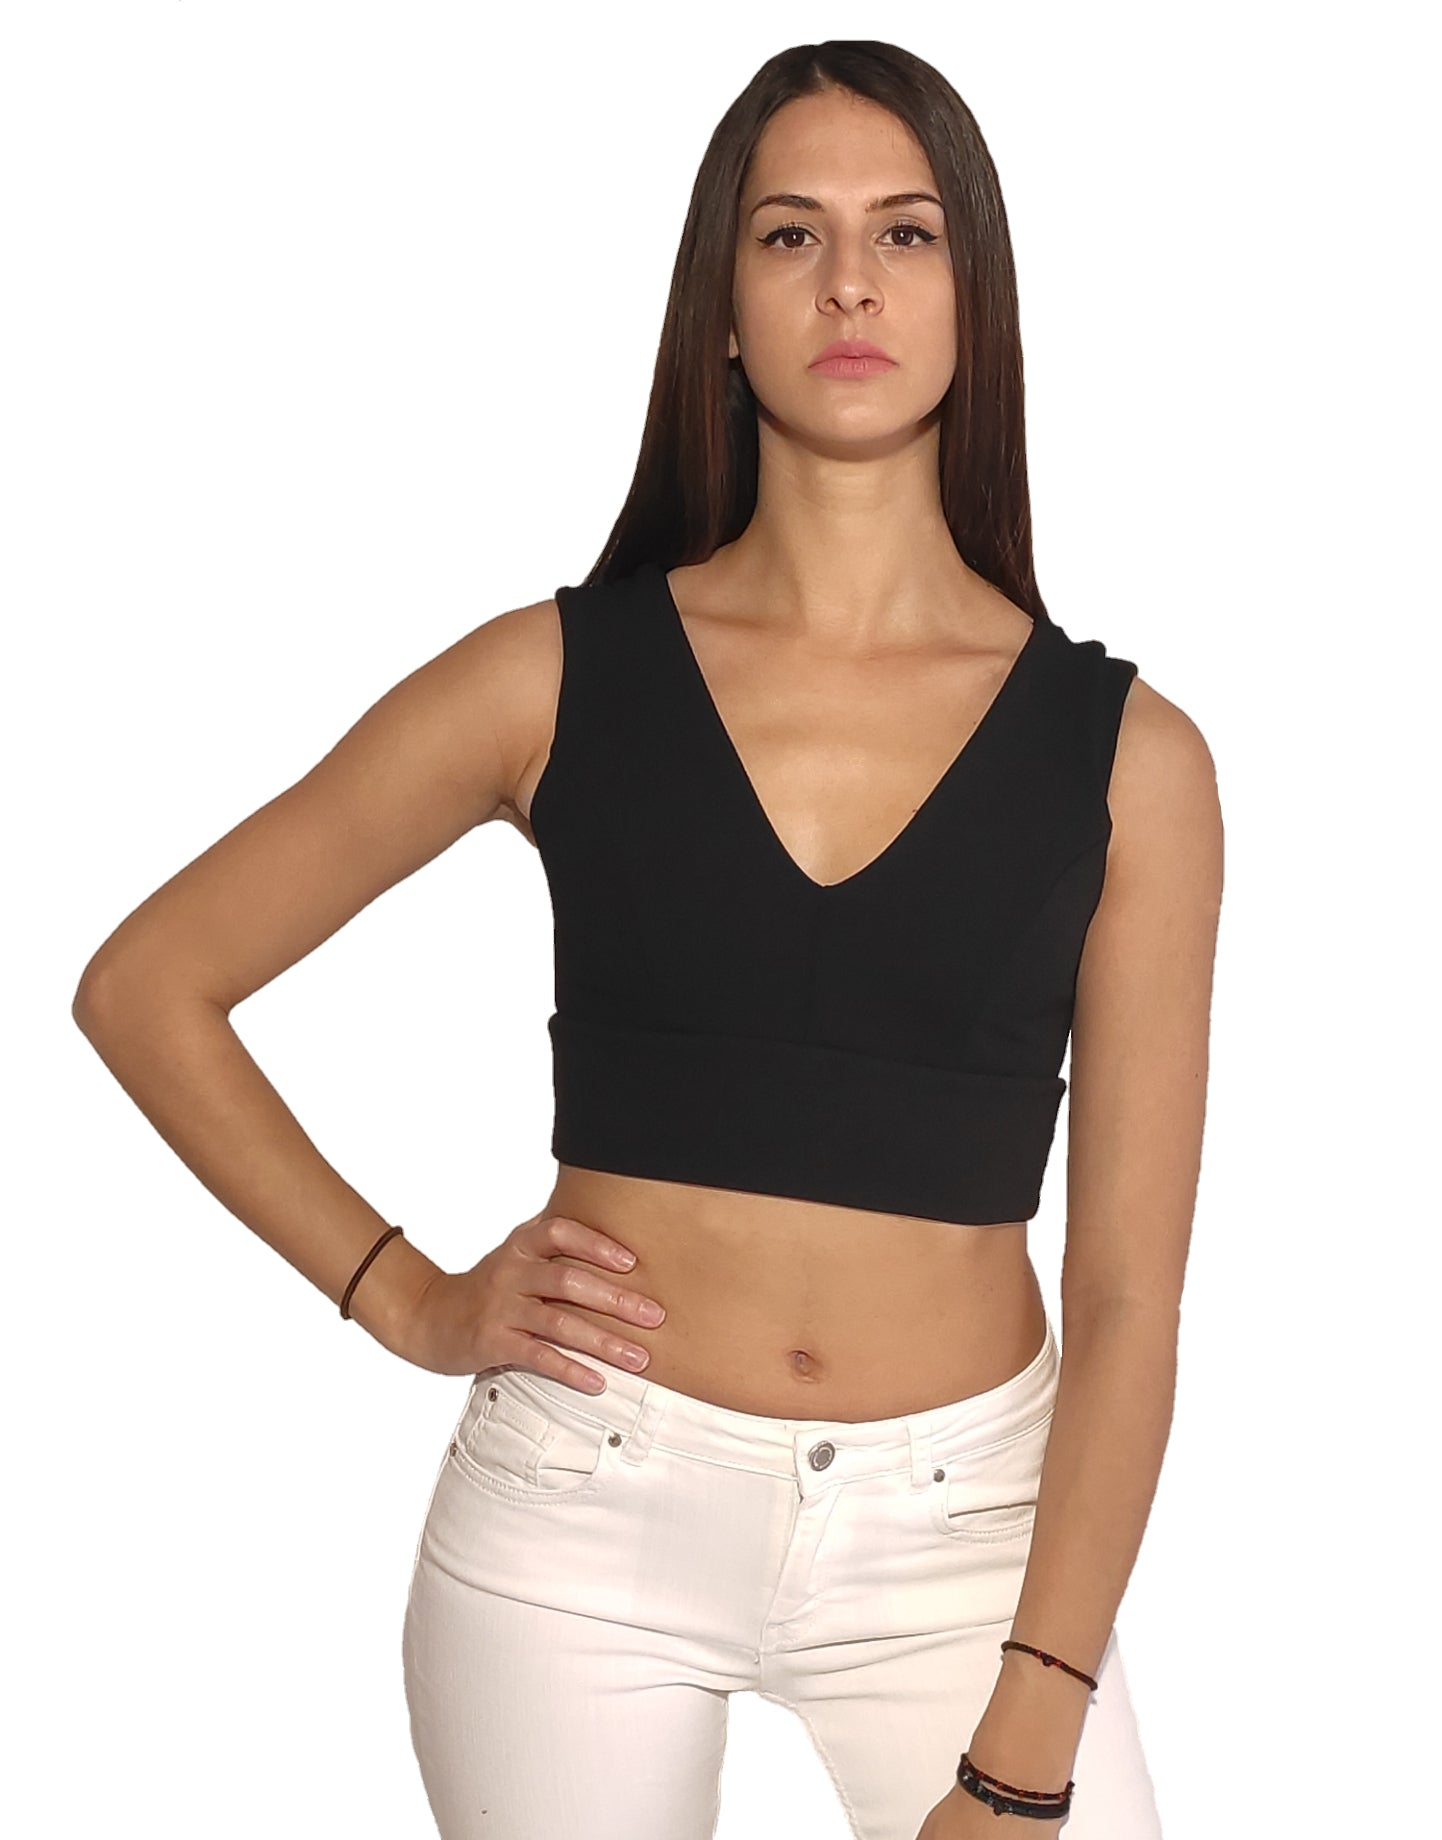 a-woman-wears-black-short-crop-top-with-V-neck-front